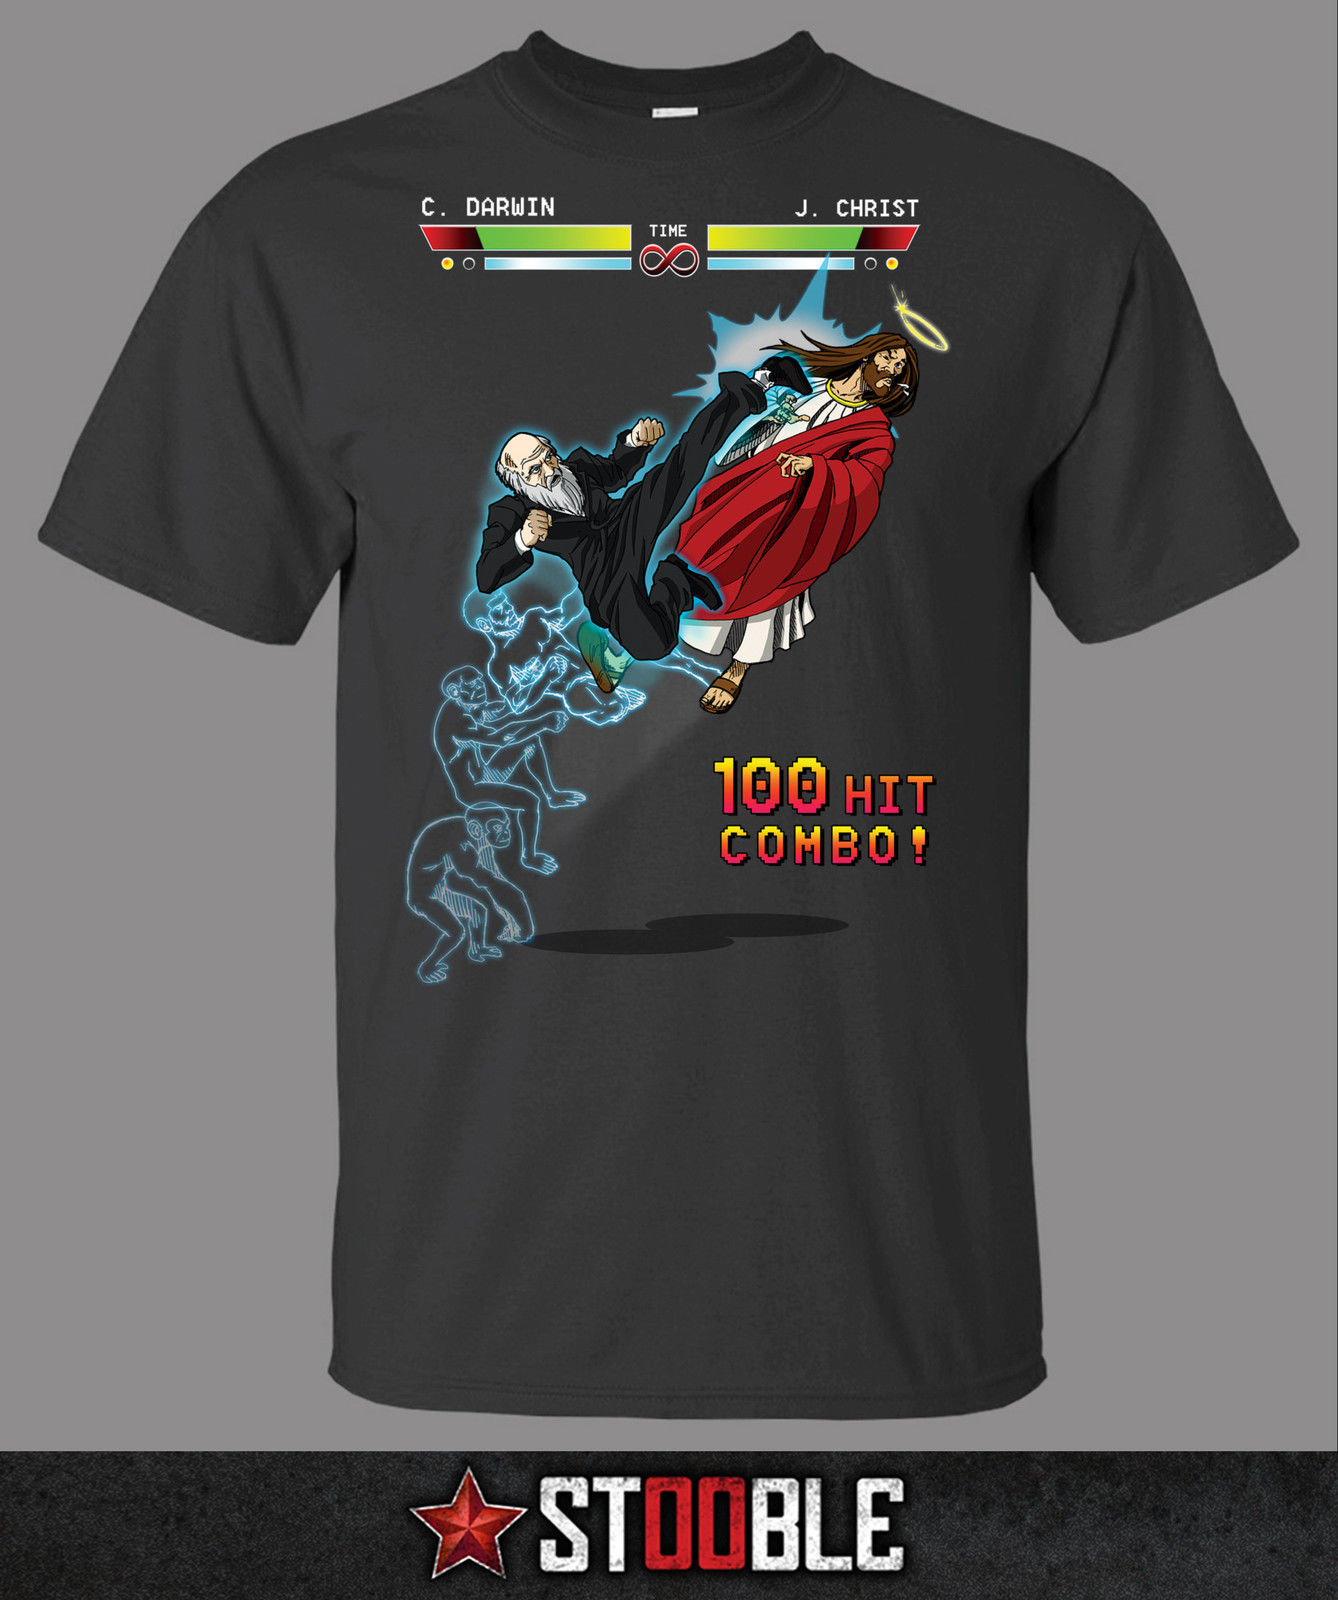 Jesus vs Darwin T Shirt Direct from Stockist New T Shirts Funny Tops Tee New Unisex Funny Tops Fashion Summer Paried Tshirts in T Shirts from Men 39 s Clothing